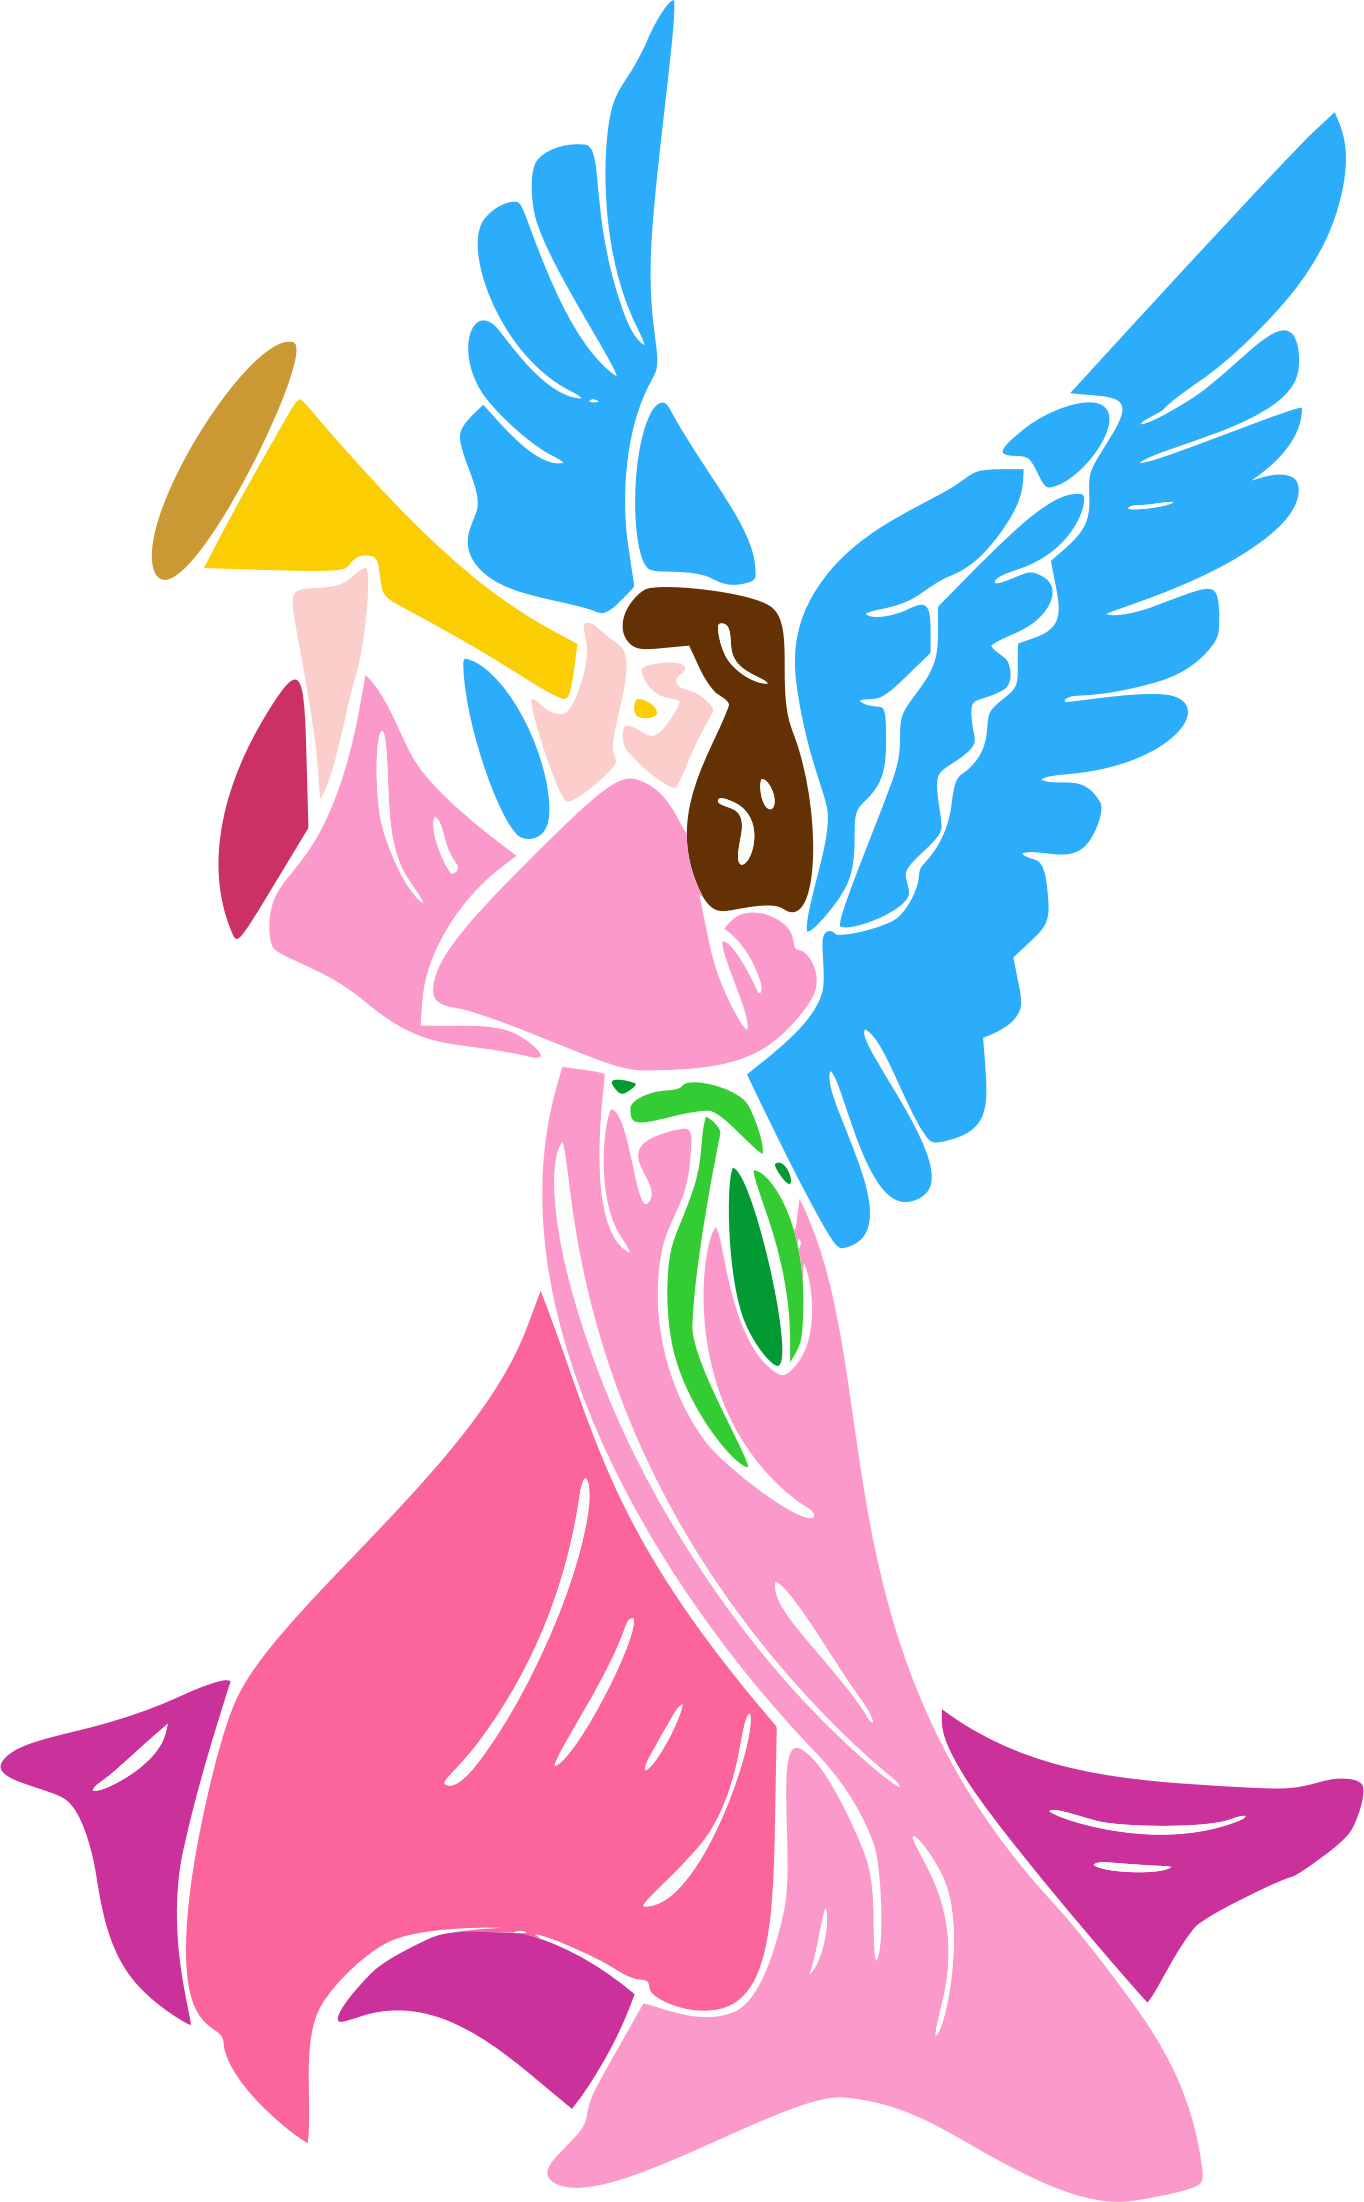 Angel Blowing Horn by GDJ